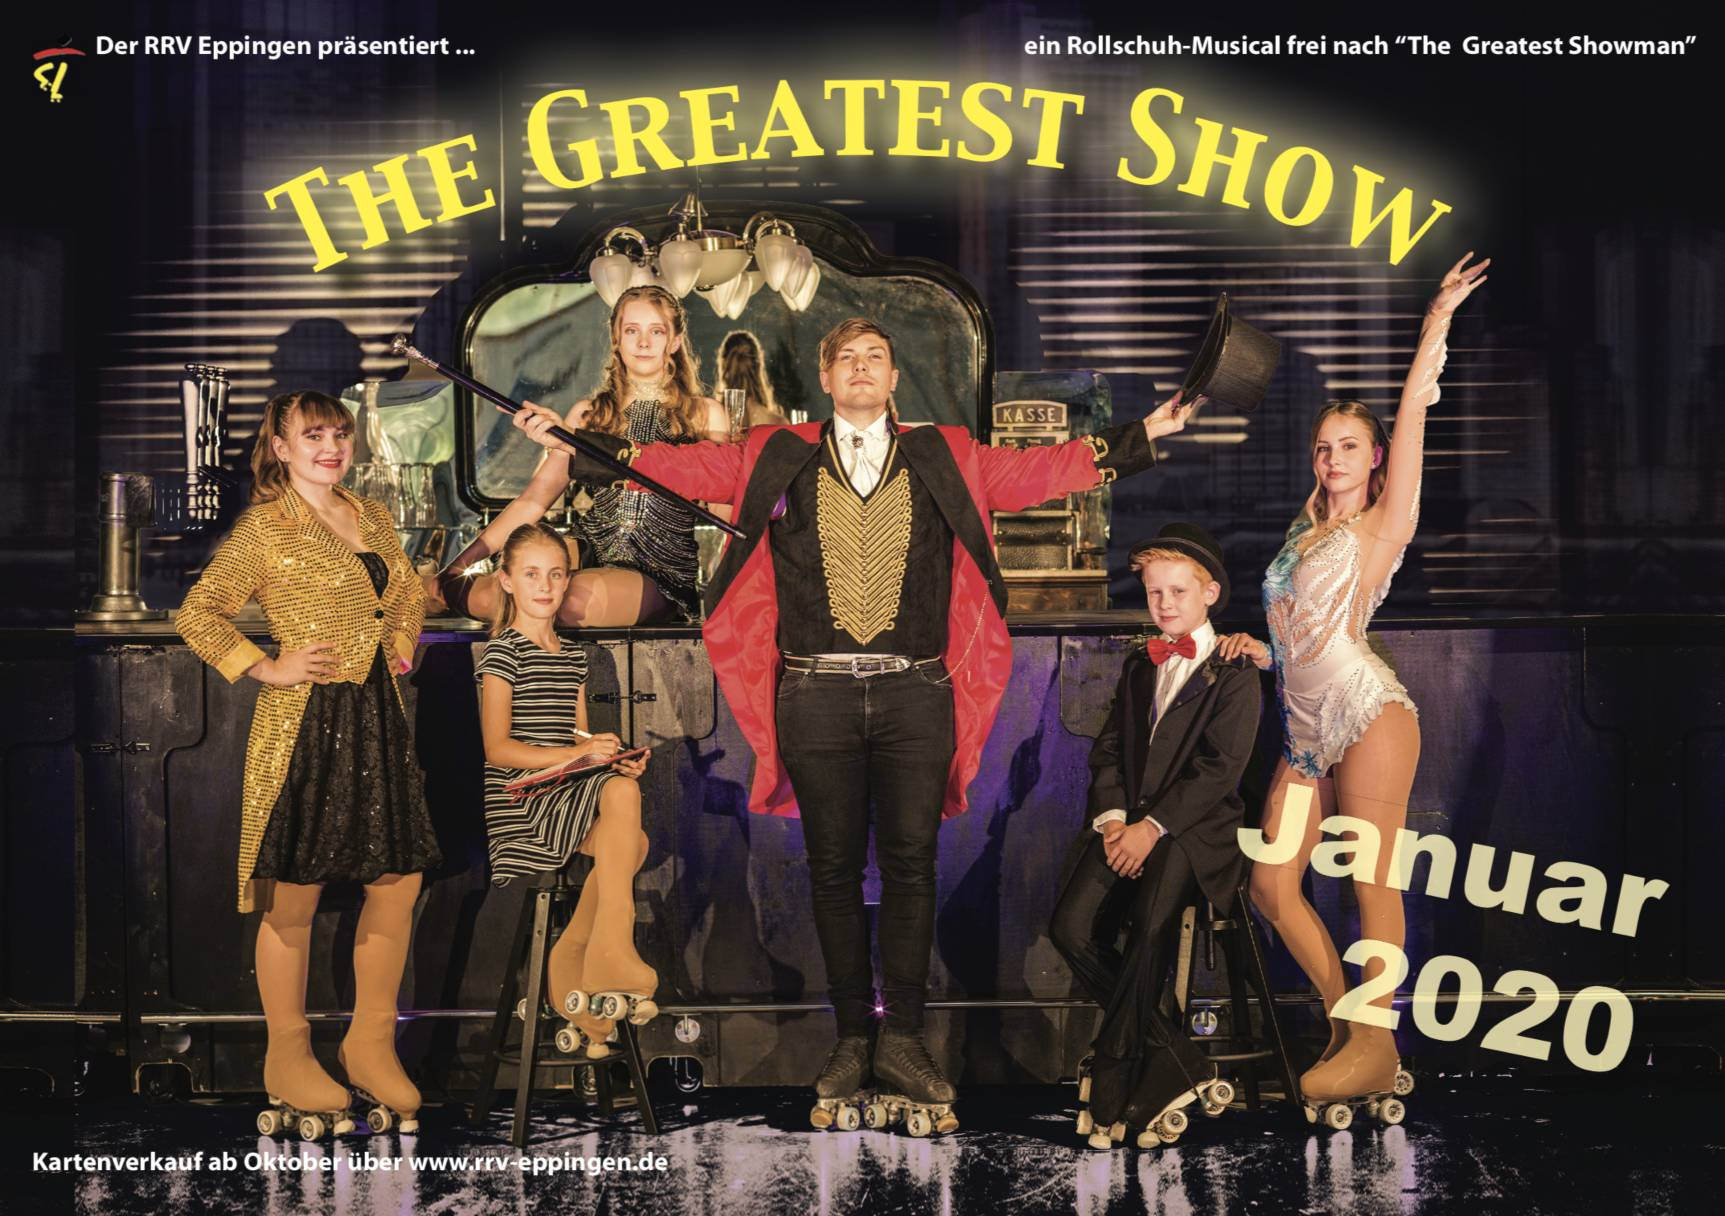 Kartenbestellung für The Greatest Show 2020